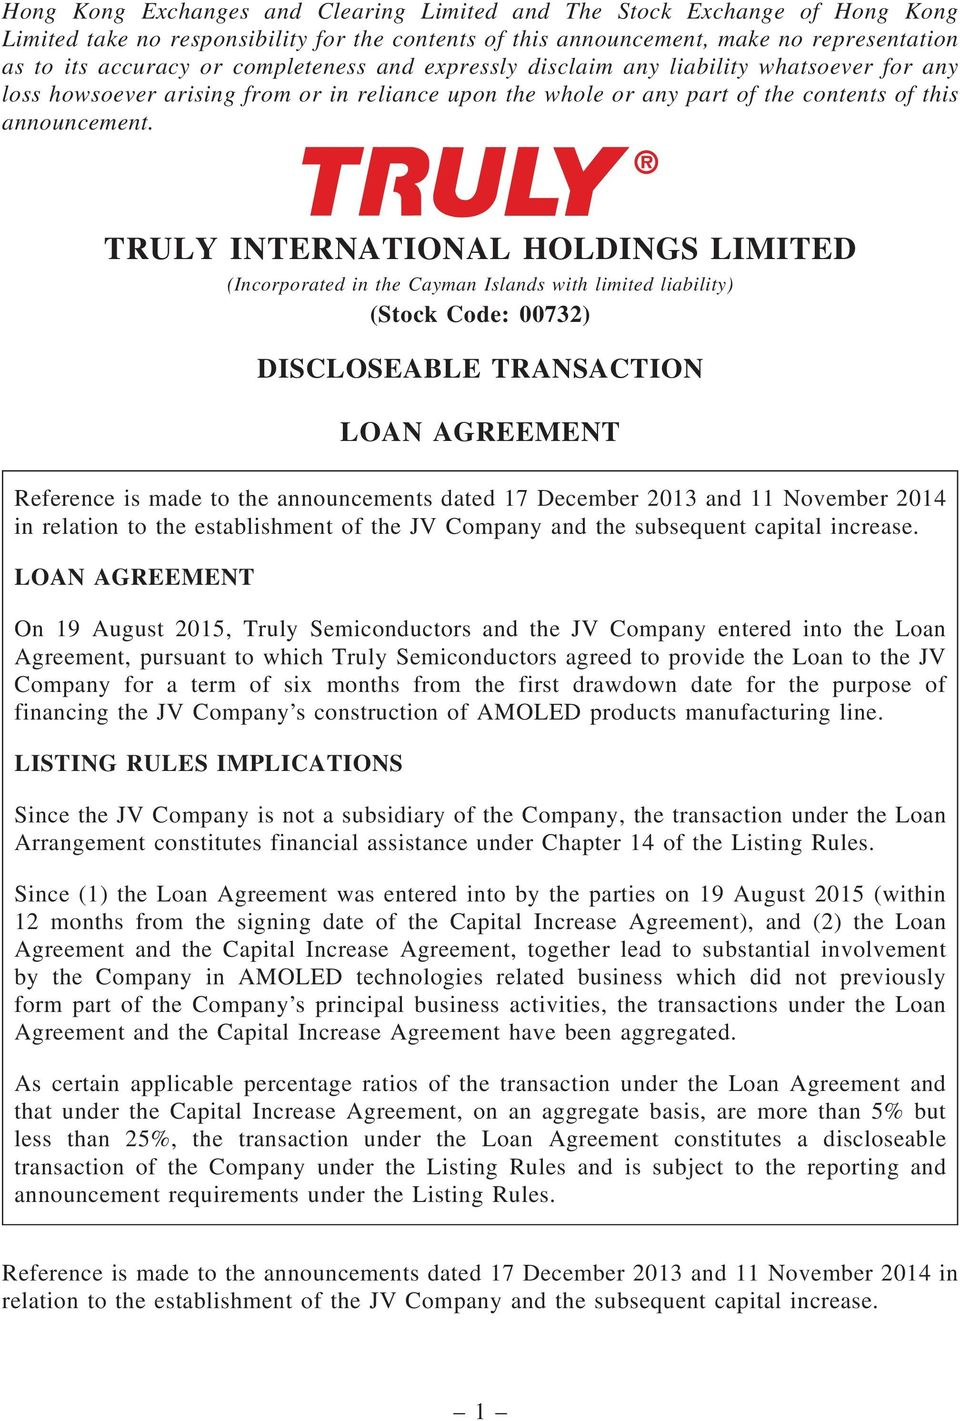 TRULY INTERNATIONAL HOLDINGS LIMITED (Incorporated in the Cayman Islands with limited liability) (Stock Code: 00732) DISCLOSEABLE TRANSACTION Reference is made to the announcements dated 17 December